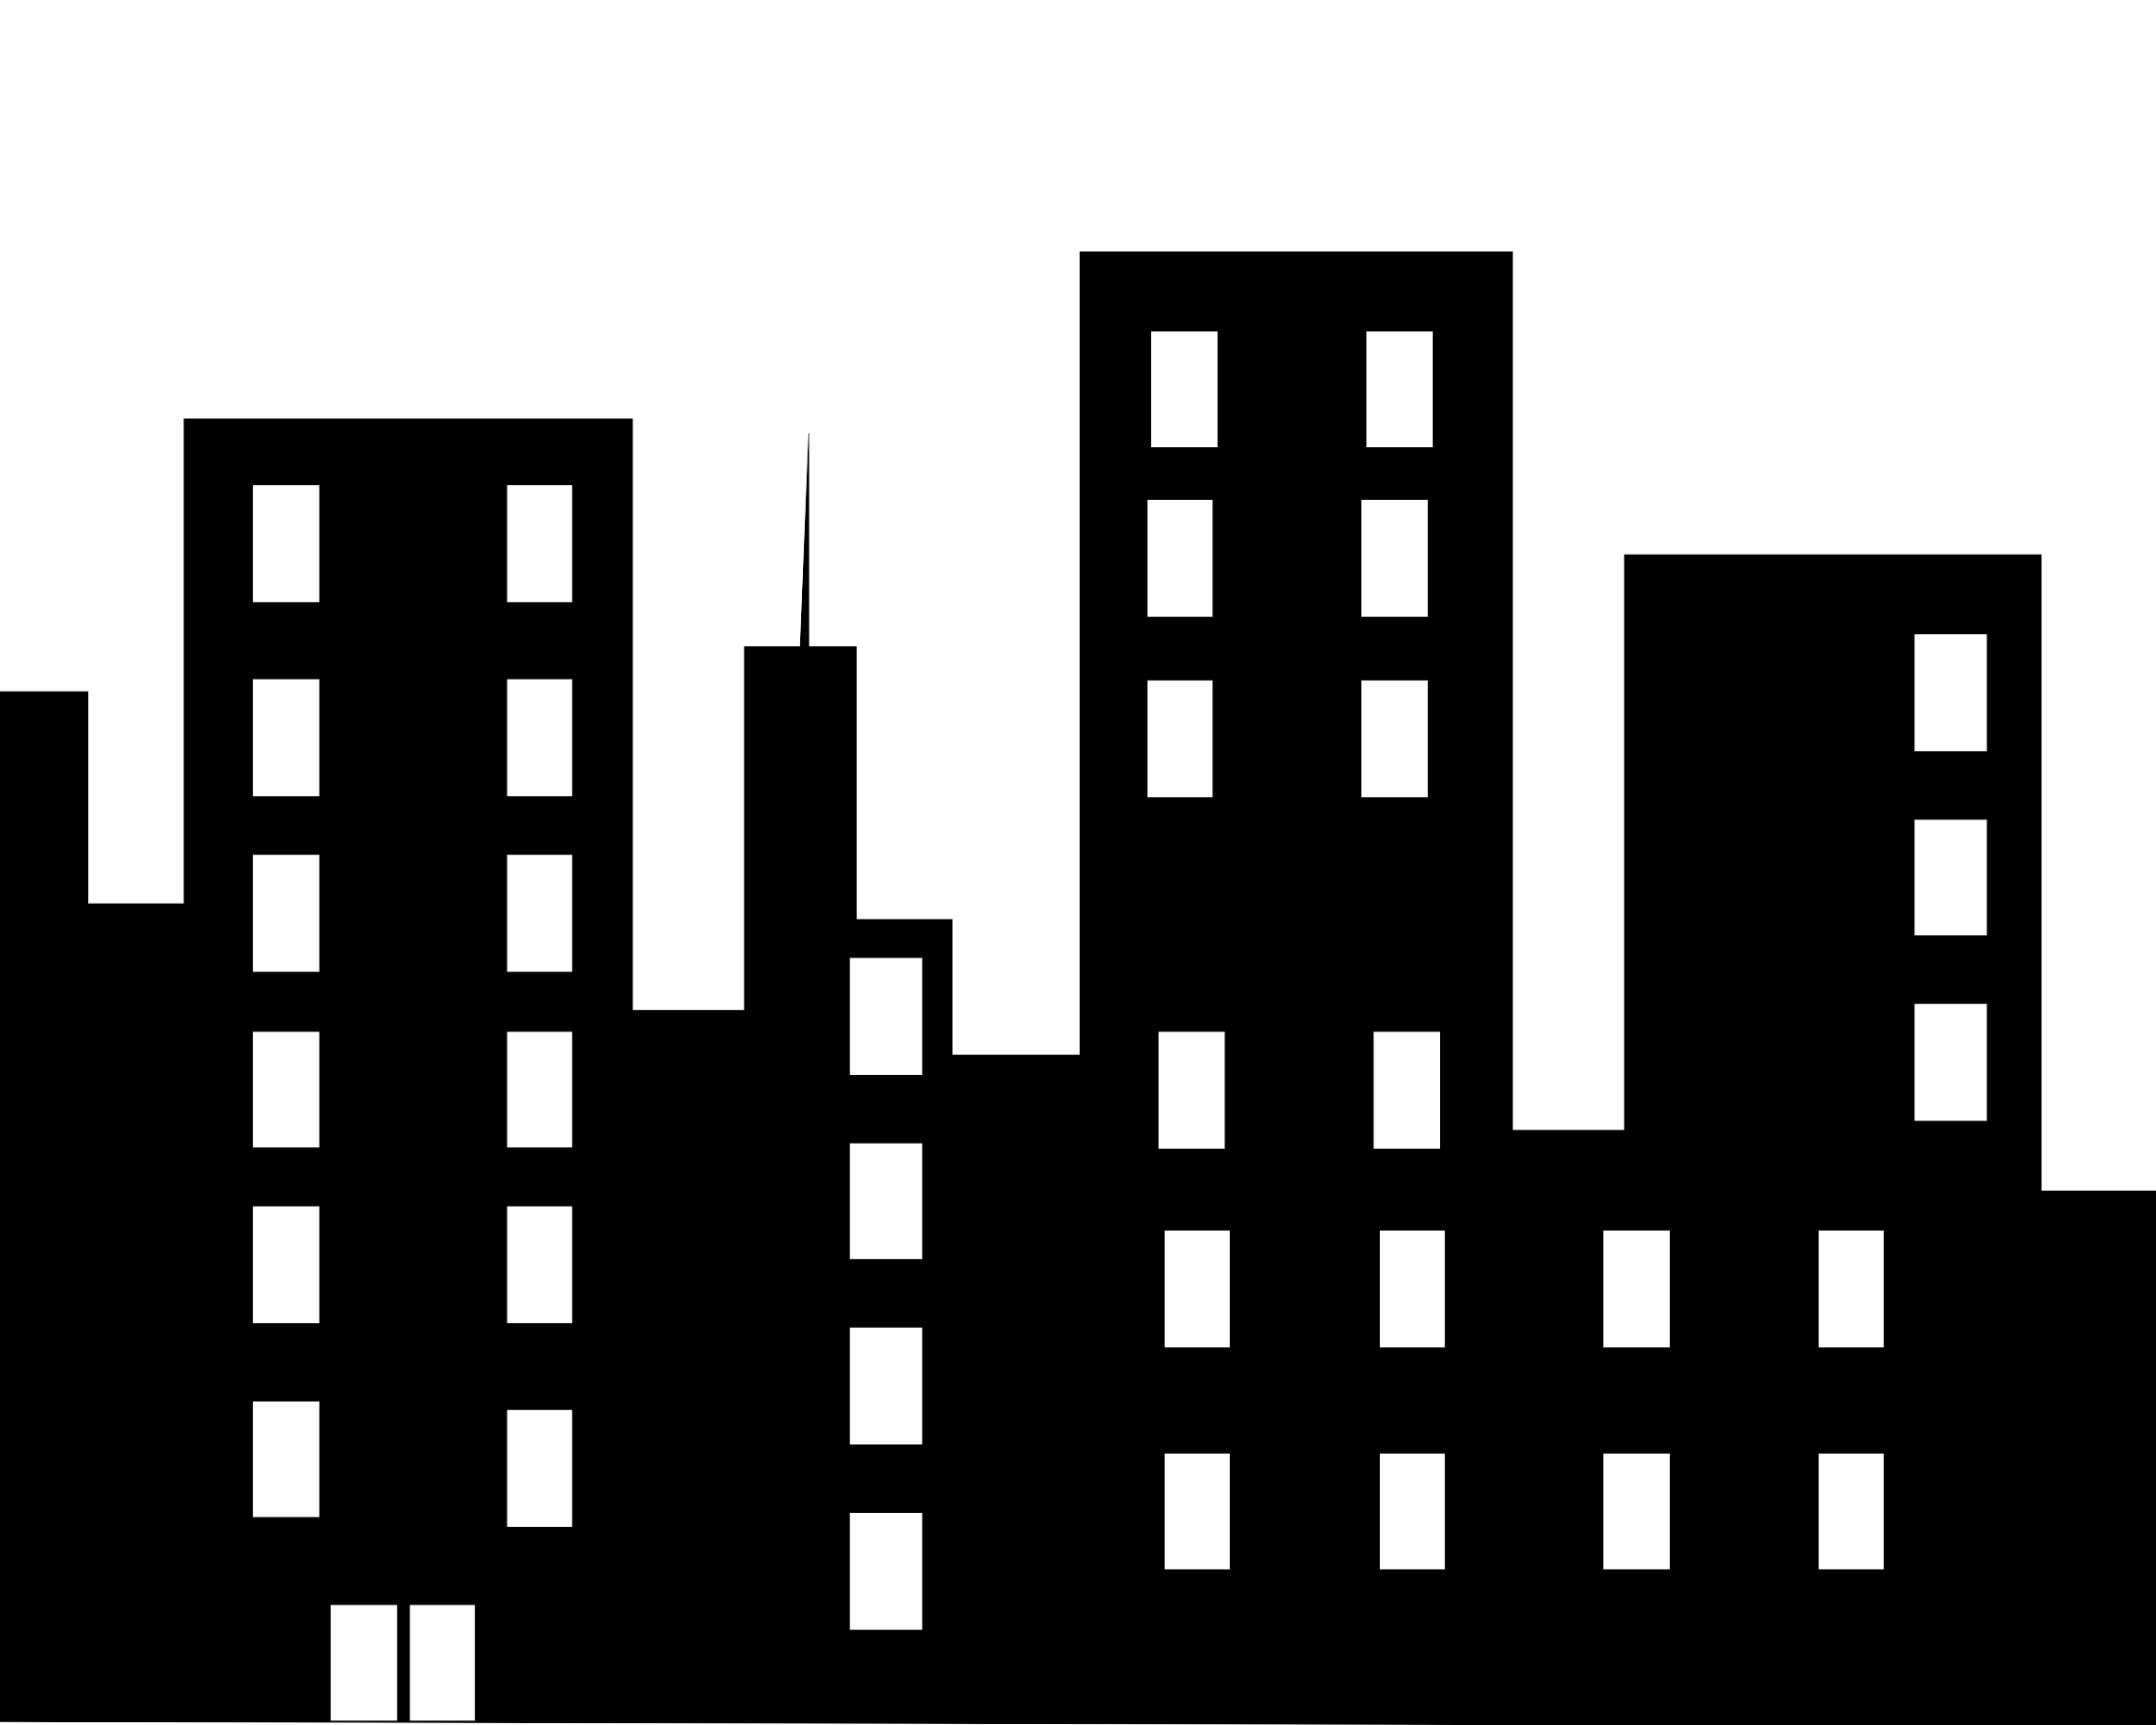 13 City Office Building Icon Images